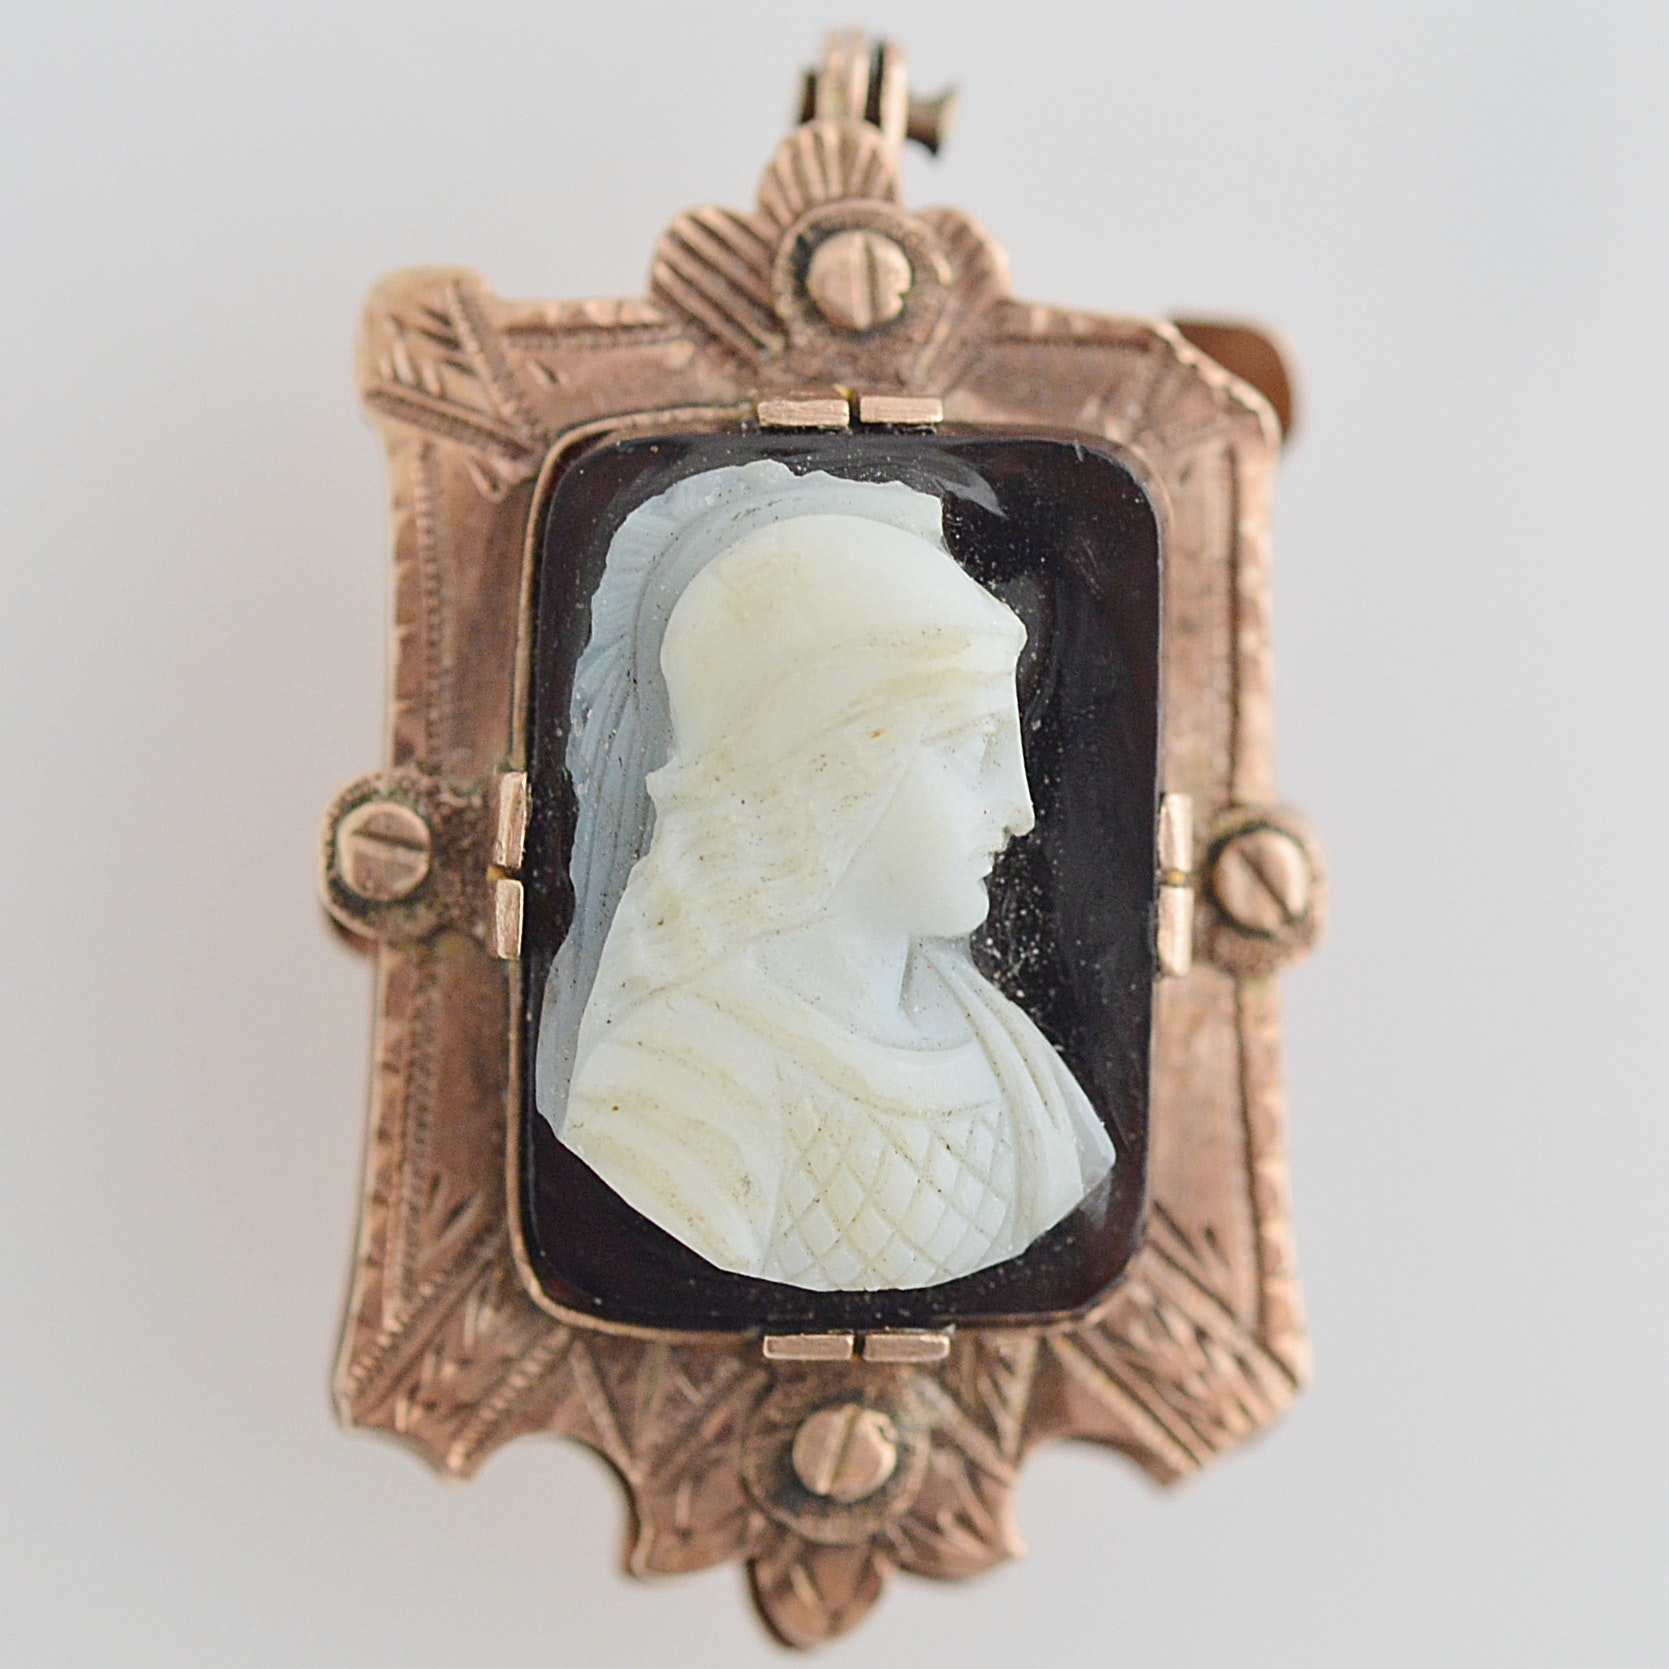 Antique 10K Yellow Gold, Onyx and Agate Cameo Pendant